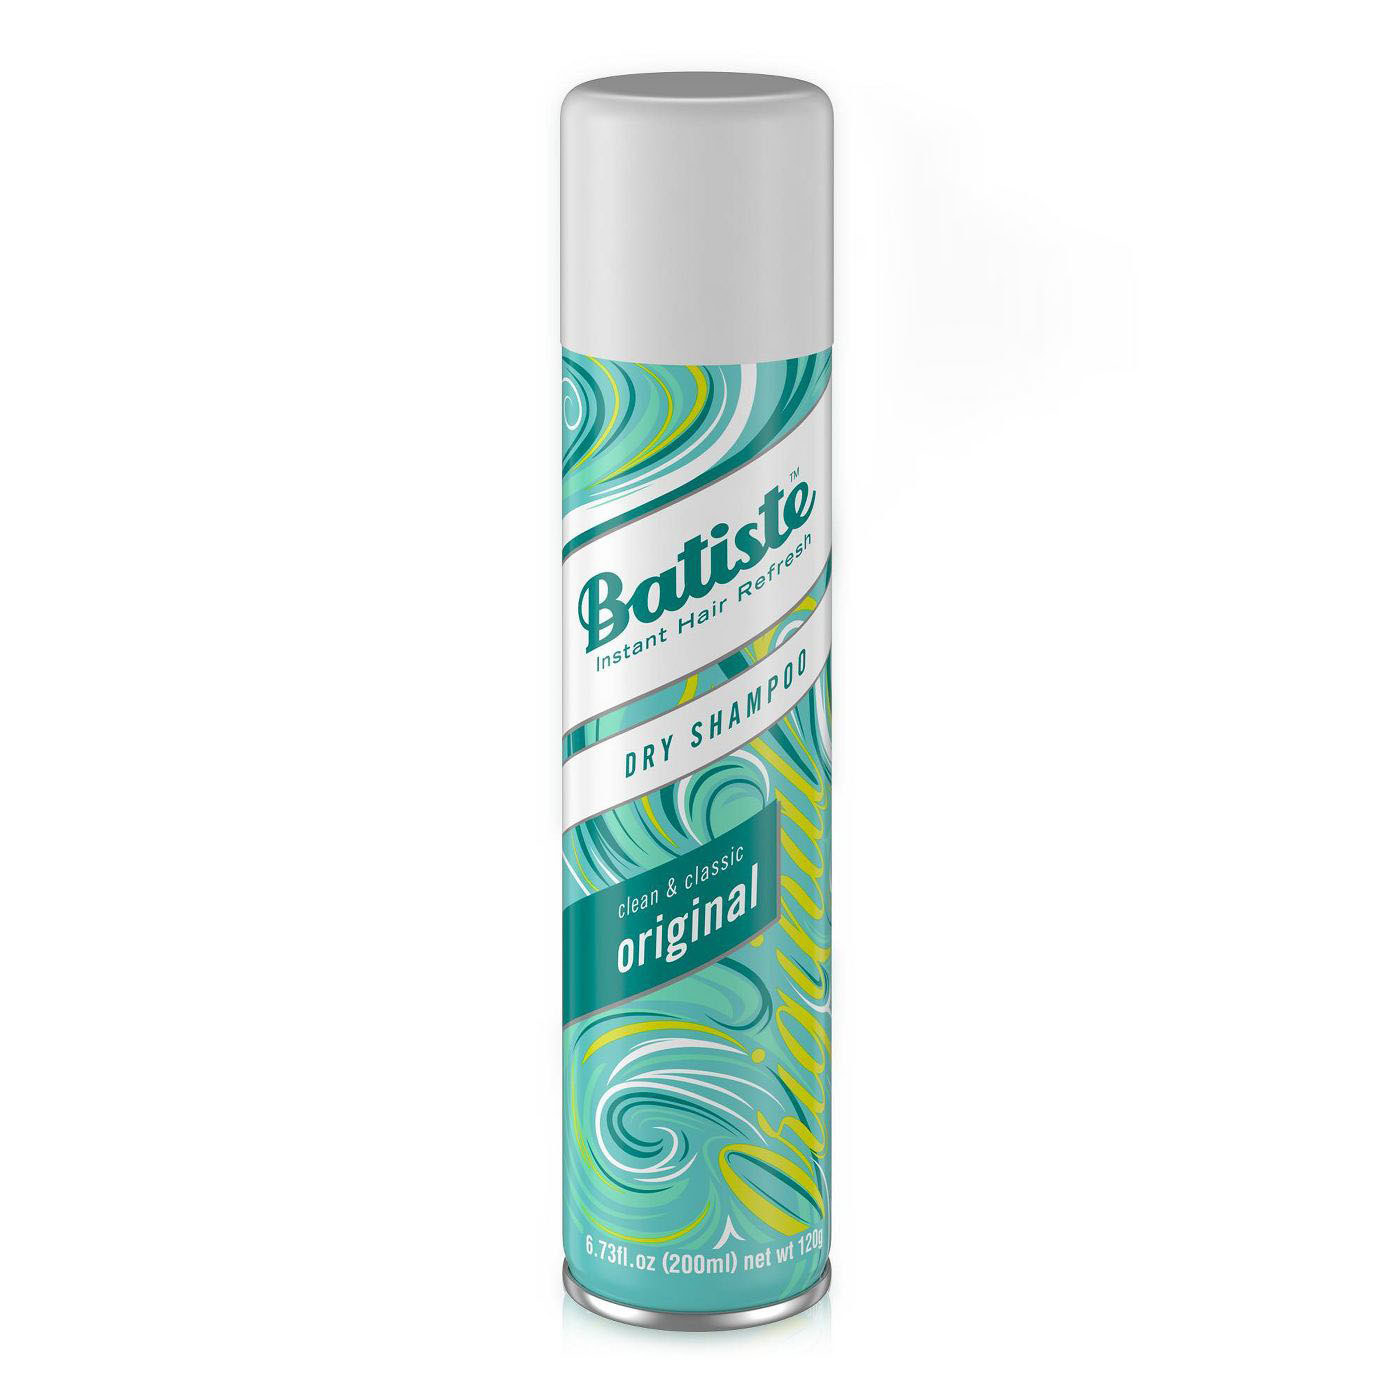 A bottle of the dry shampoo